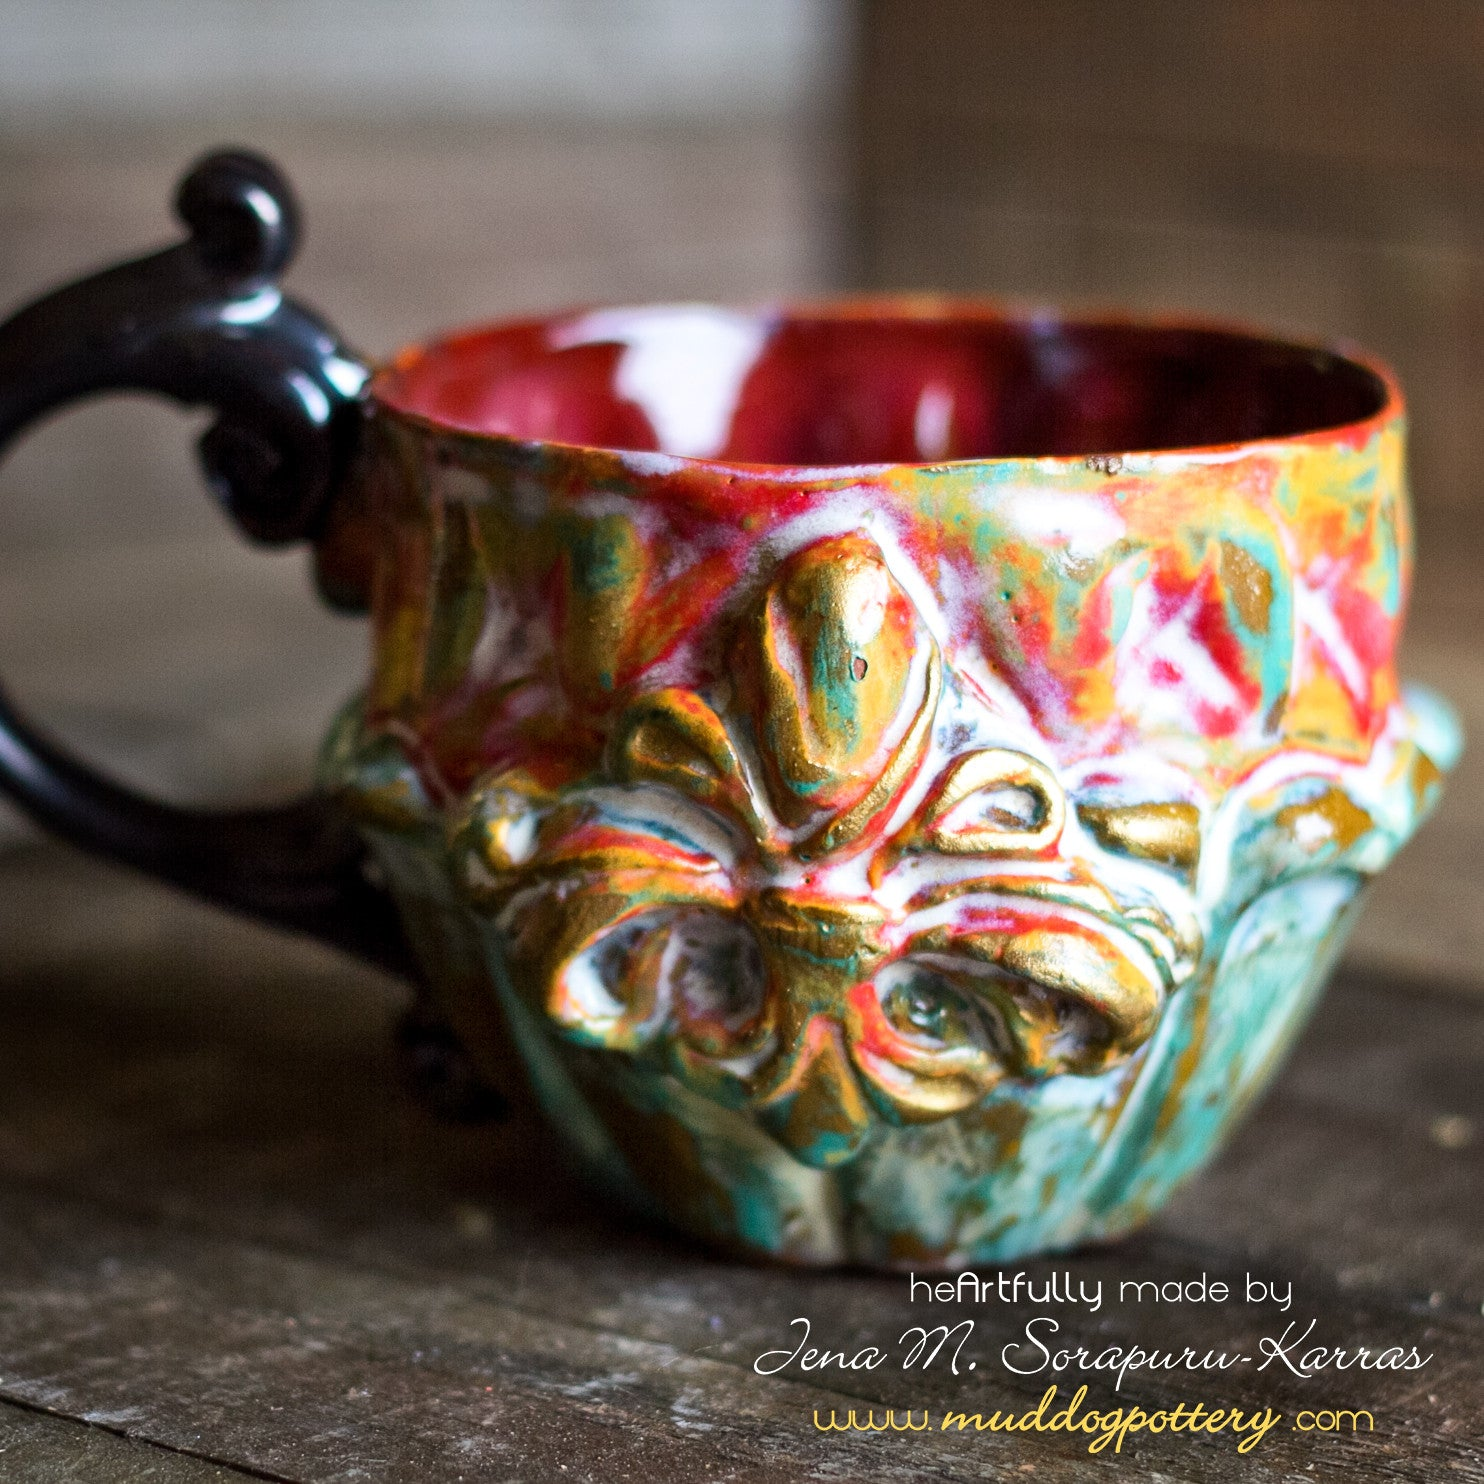 The Creole House Teacup (piti)